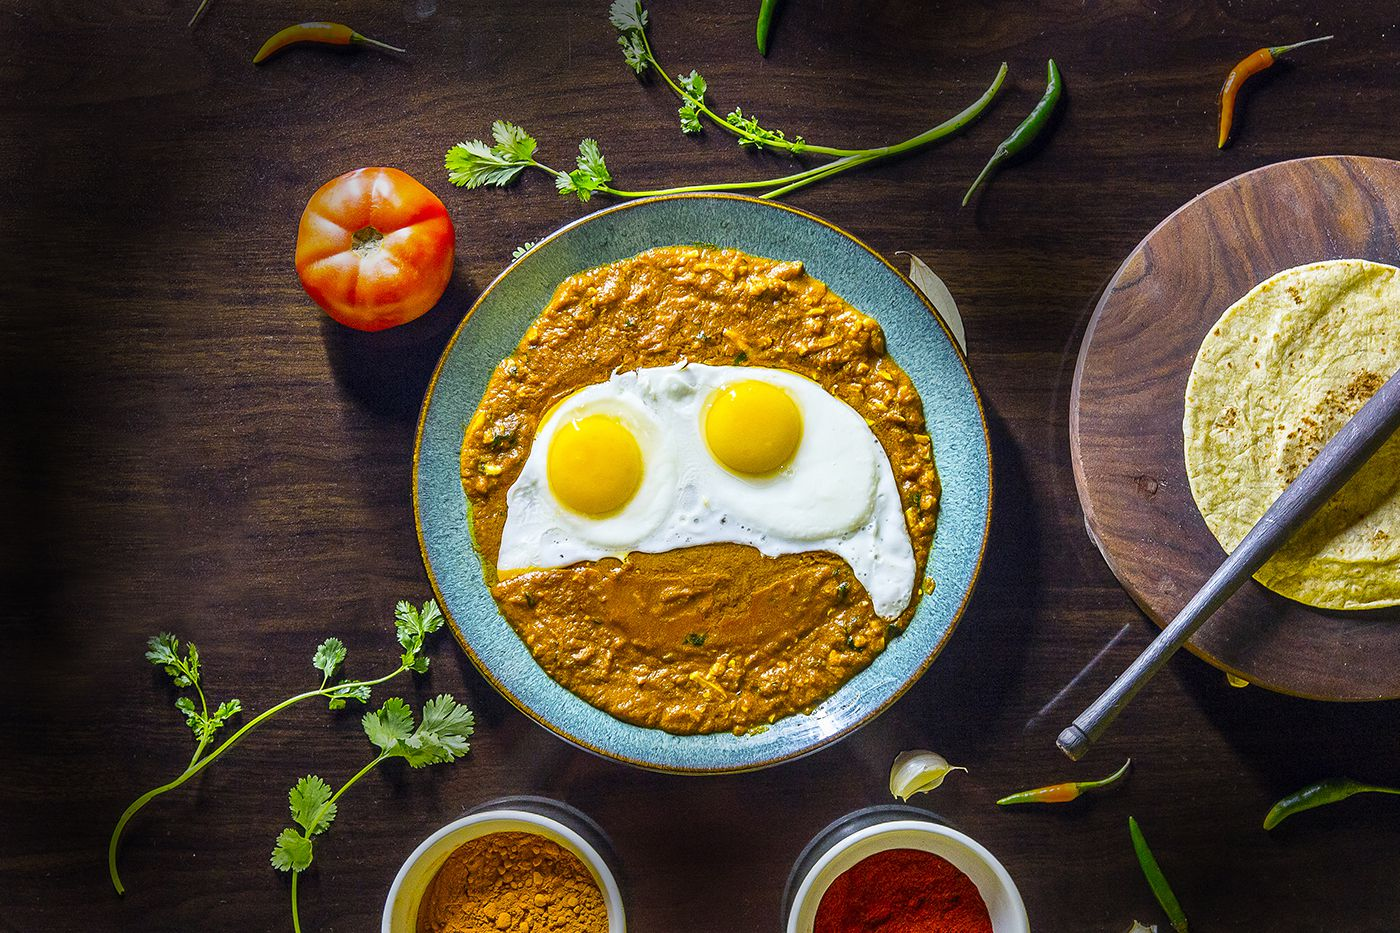 EggHolic's surti gotalo is a mixture of shredded hard boiled eggs and spices, topped with optional sunny-side up eggs.